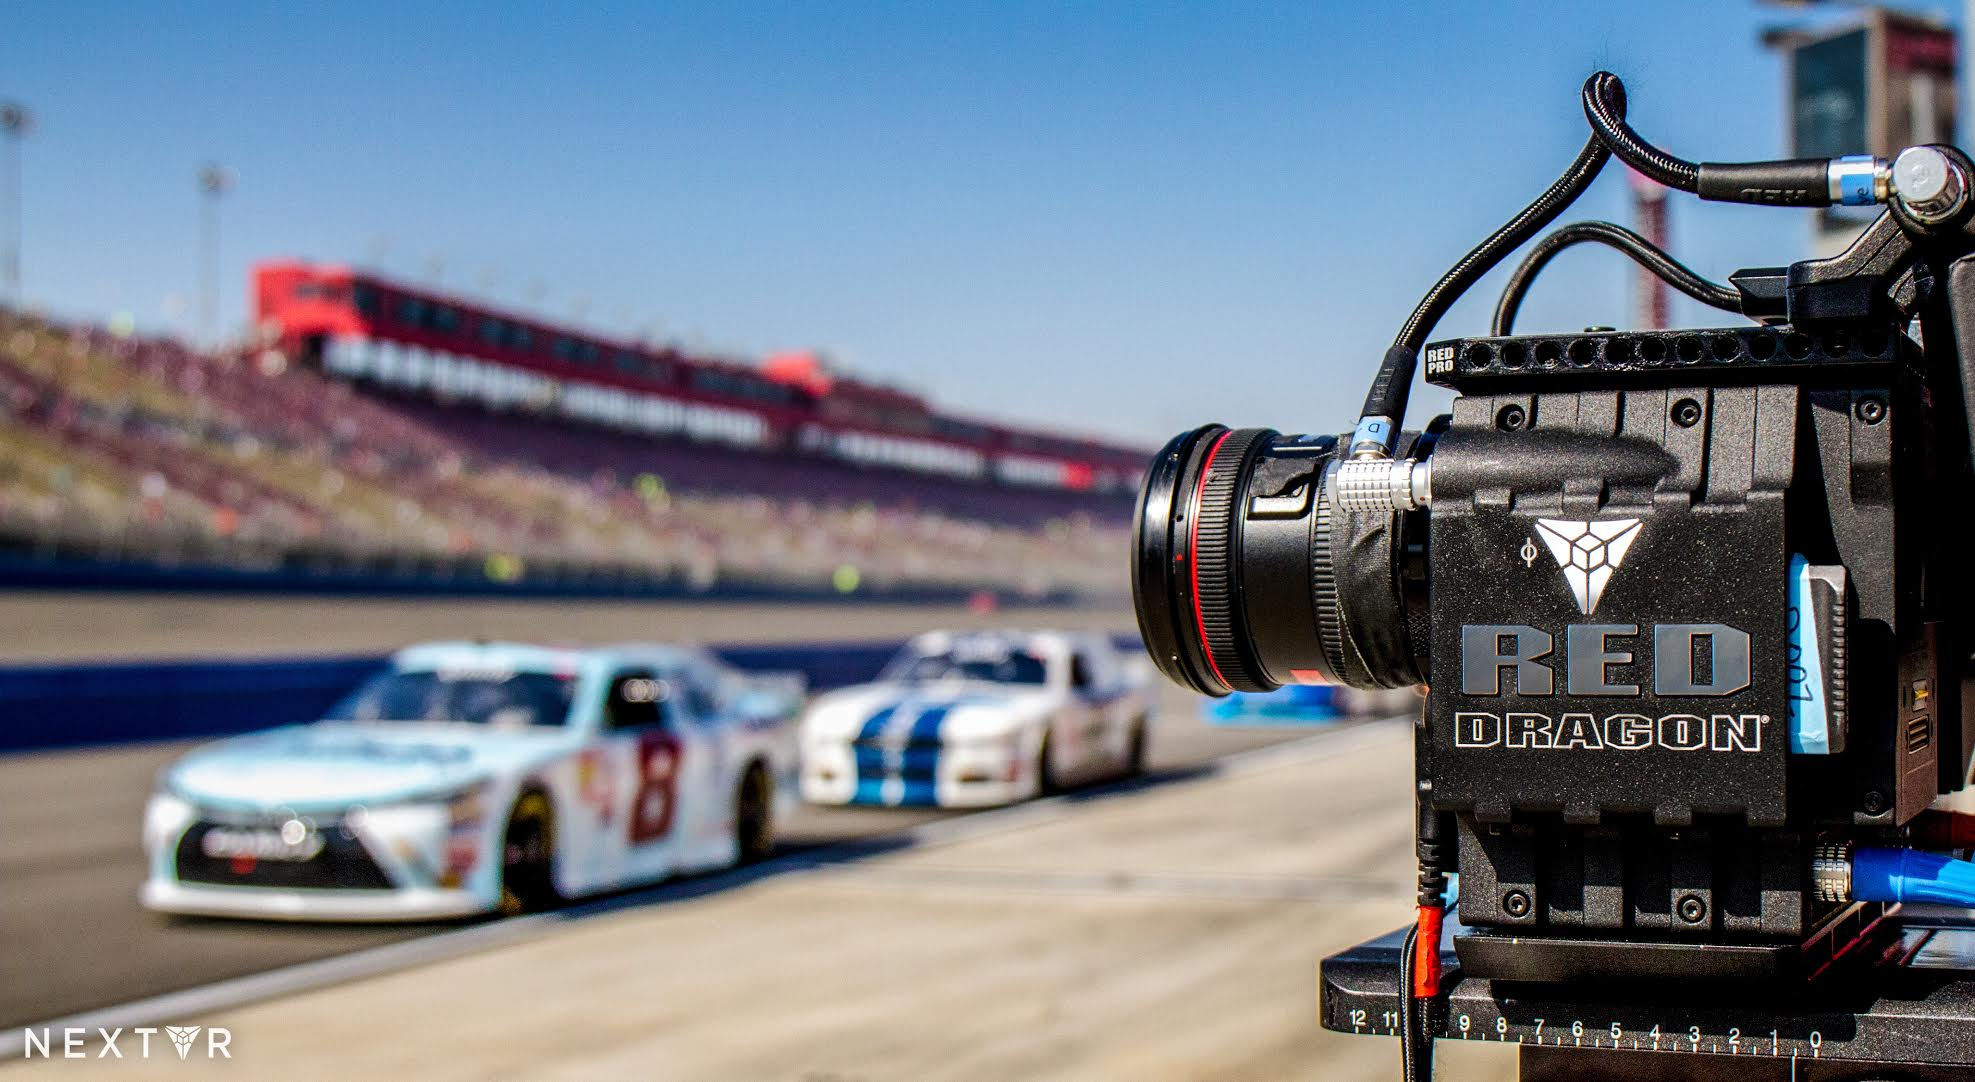 NextVR can capture sports like NASCAR, NBA and NHL in virtual reality